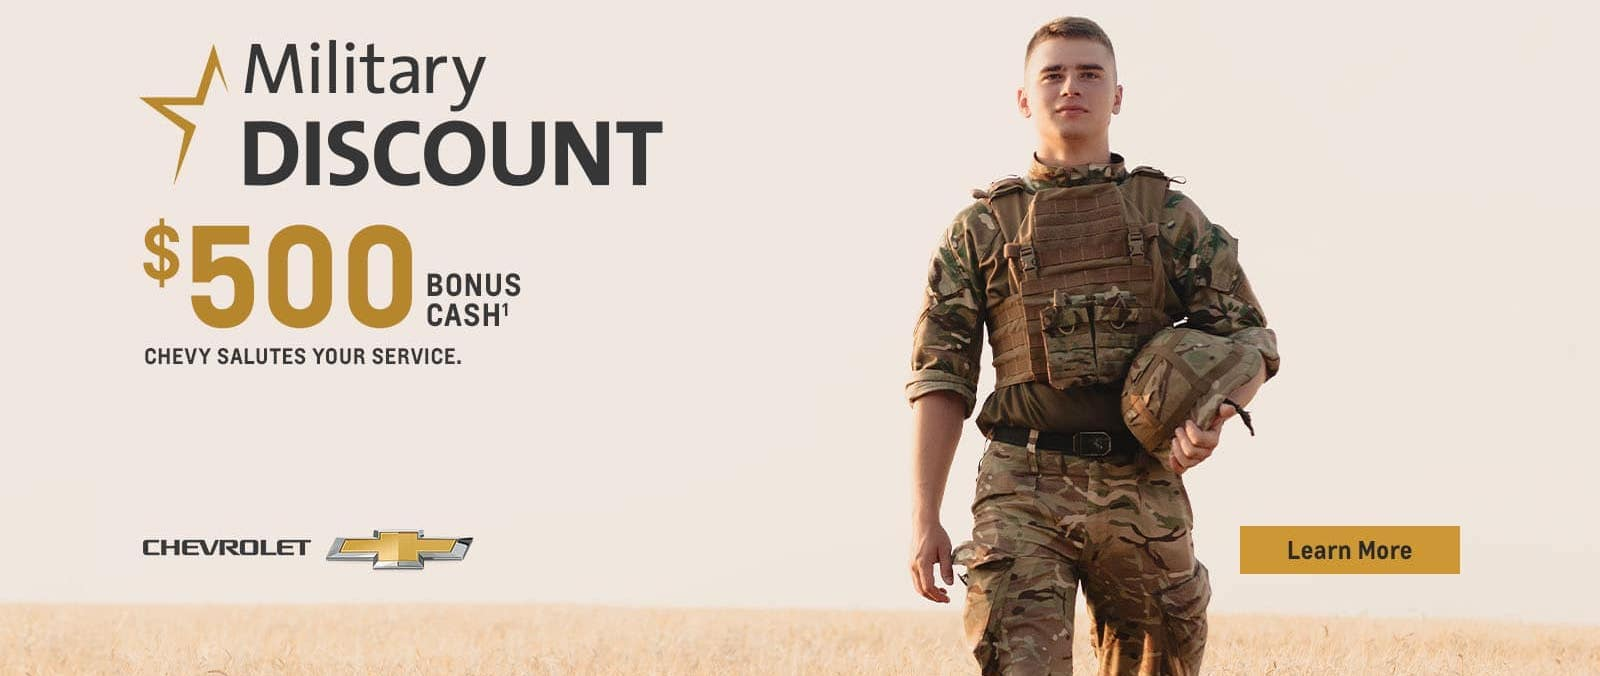 MILITARY-DISCOUNT_1600x686